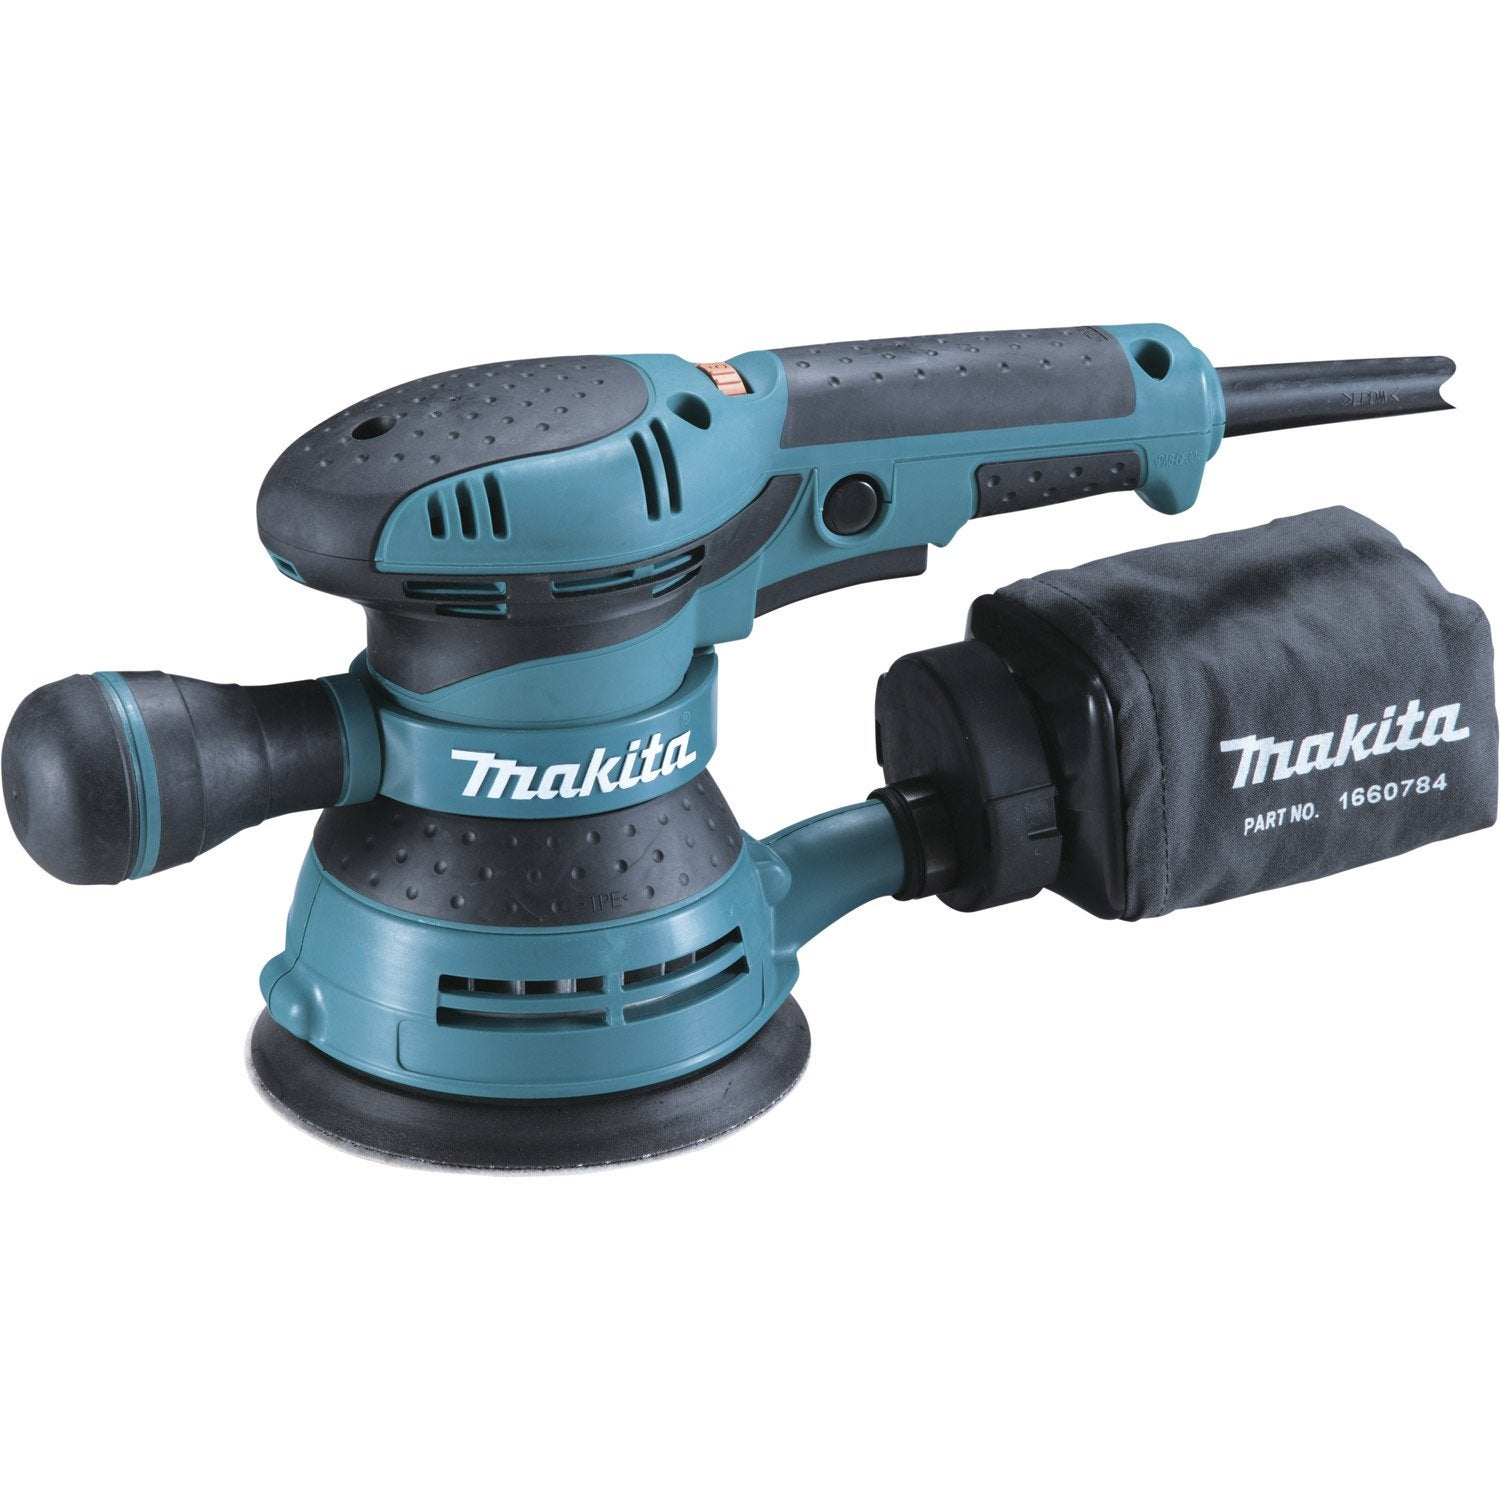 Ponceuse excentrique filaire makita bo5041kx1 300 w - Makita leroy merlin ...